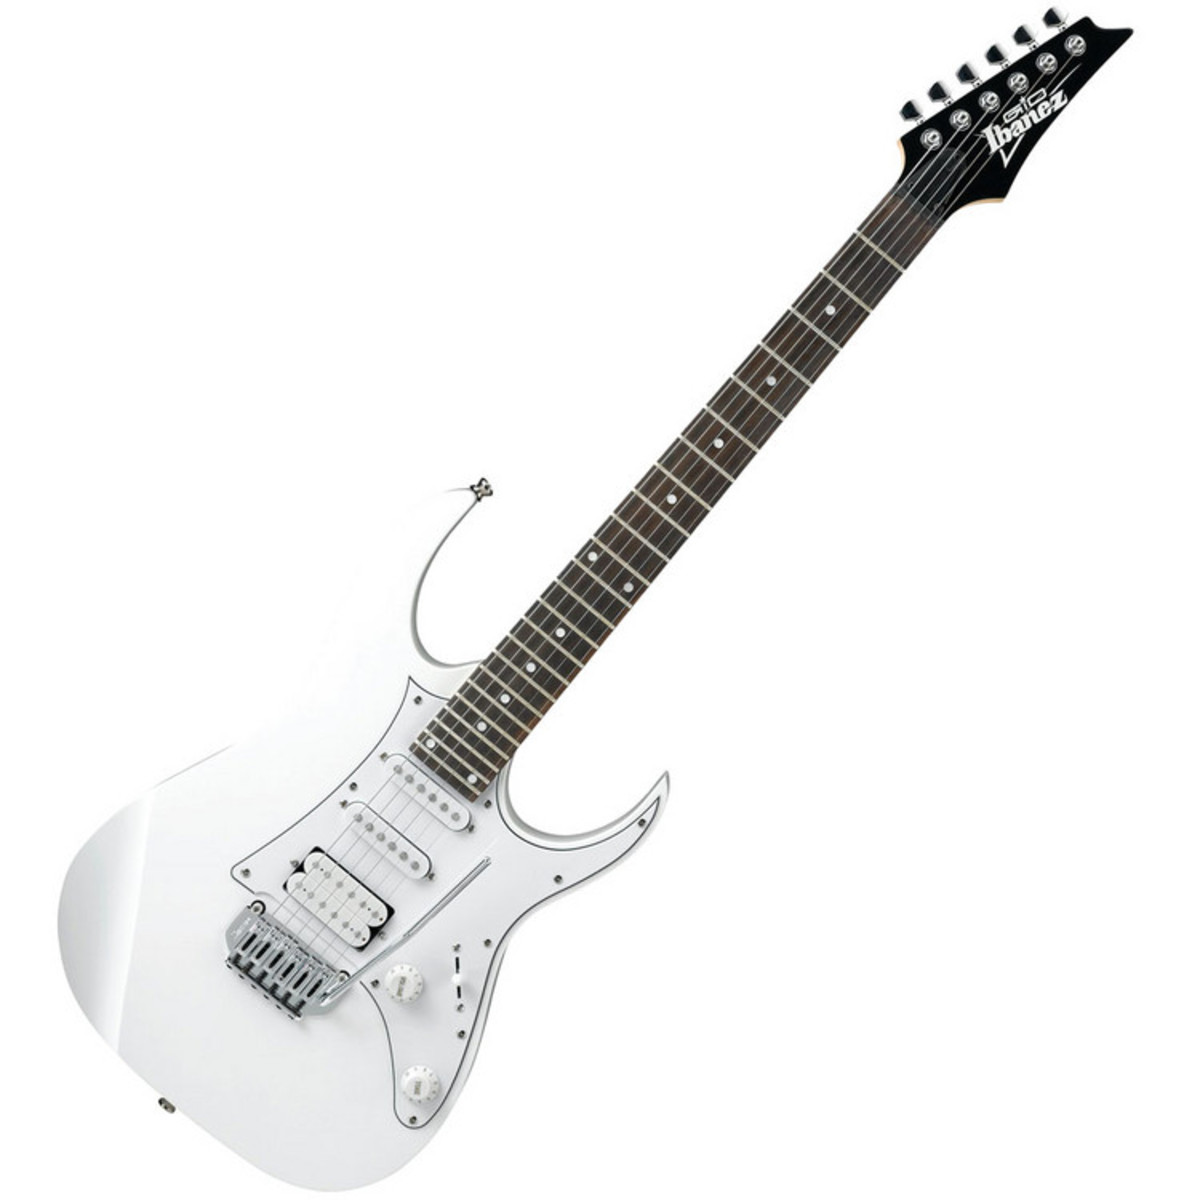 Cheap Ibanez GRG140 Electric Guitar, White